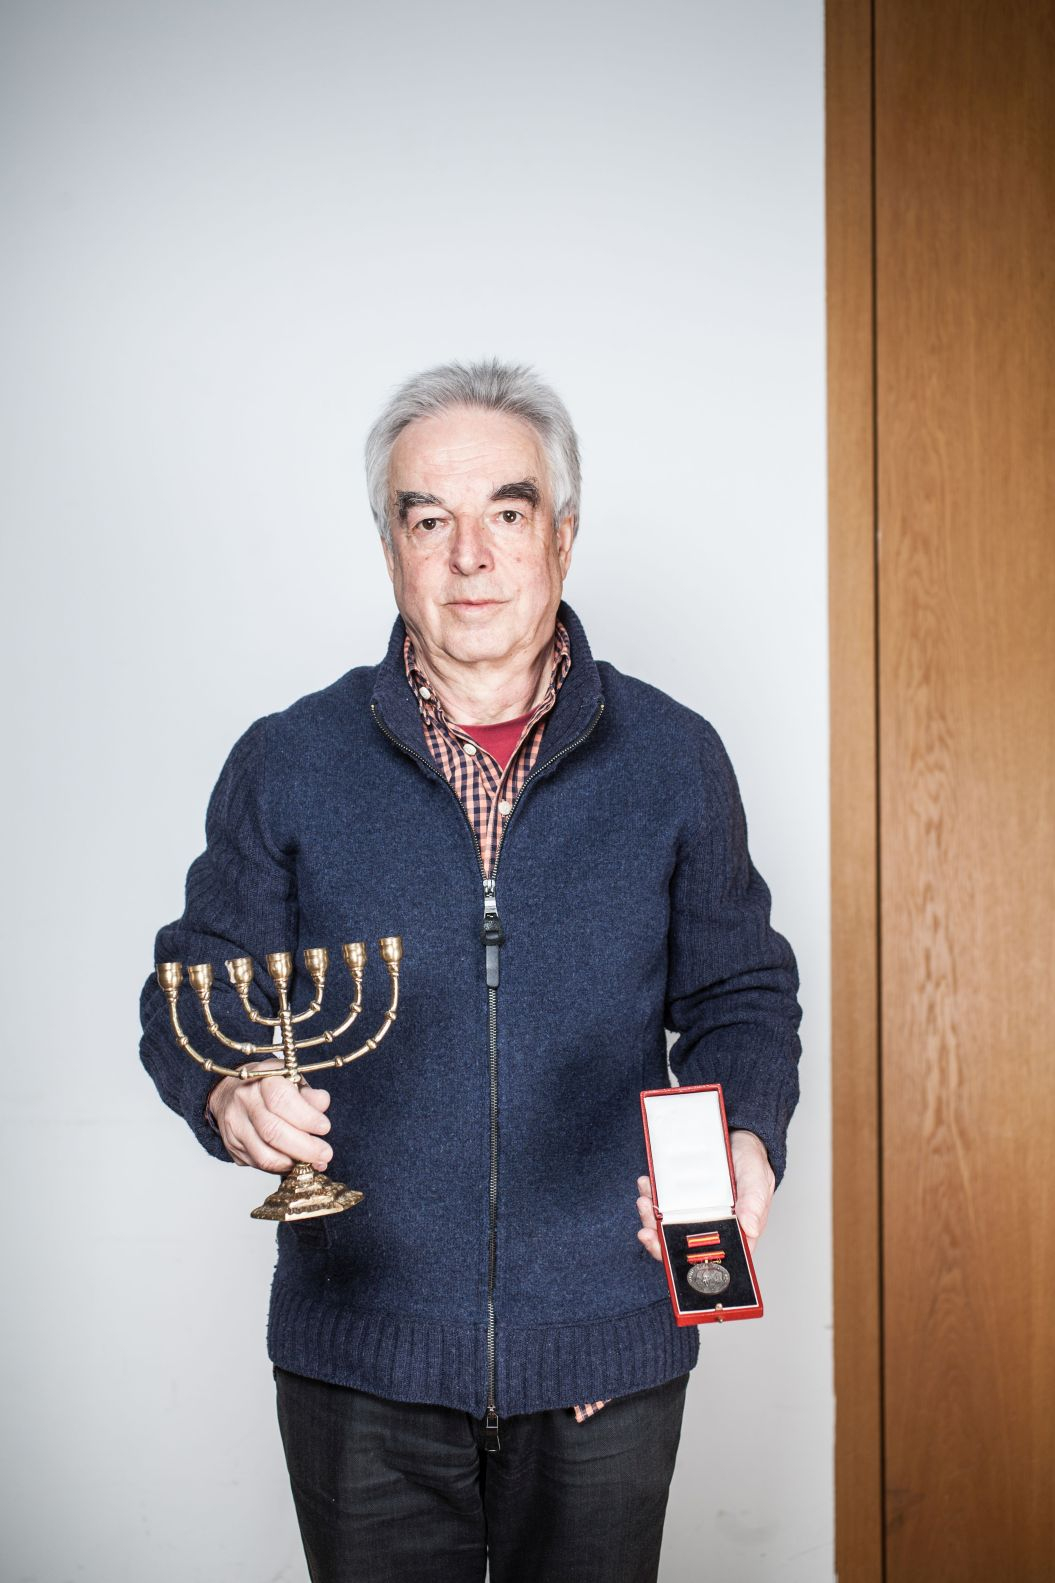 A gray-haired man holds a menorah in one hand and a medal in the other.